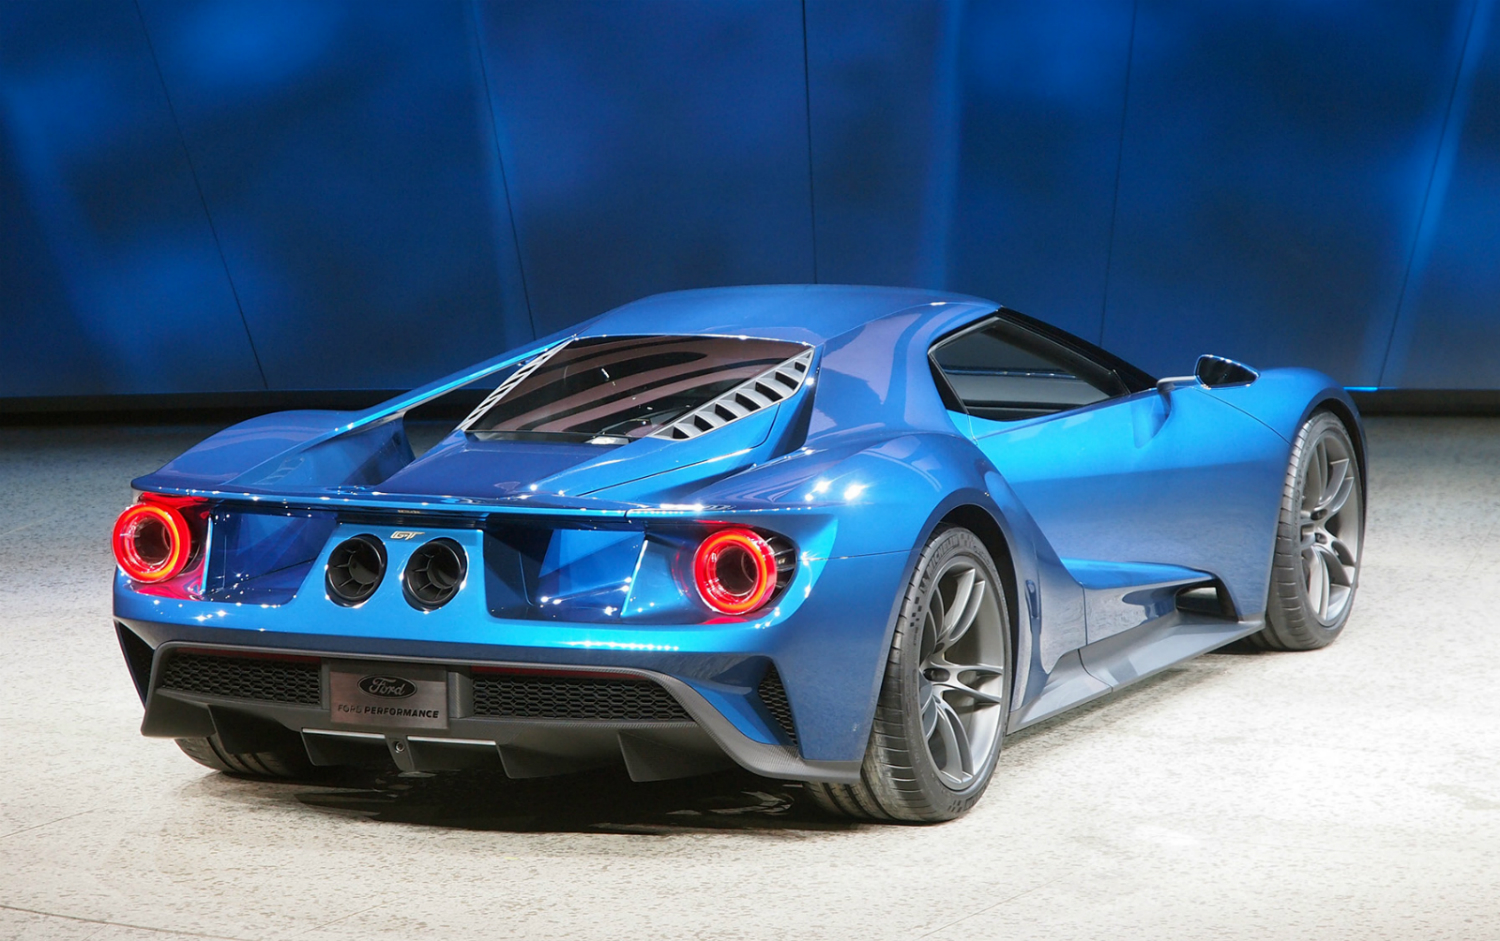 Ford Delivering 12 New Performance Vehicles For 2020 ... - photo#19